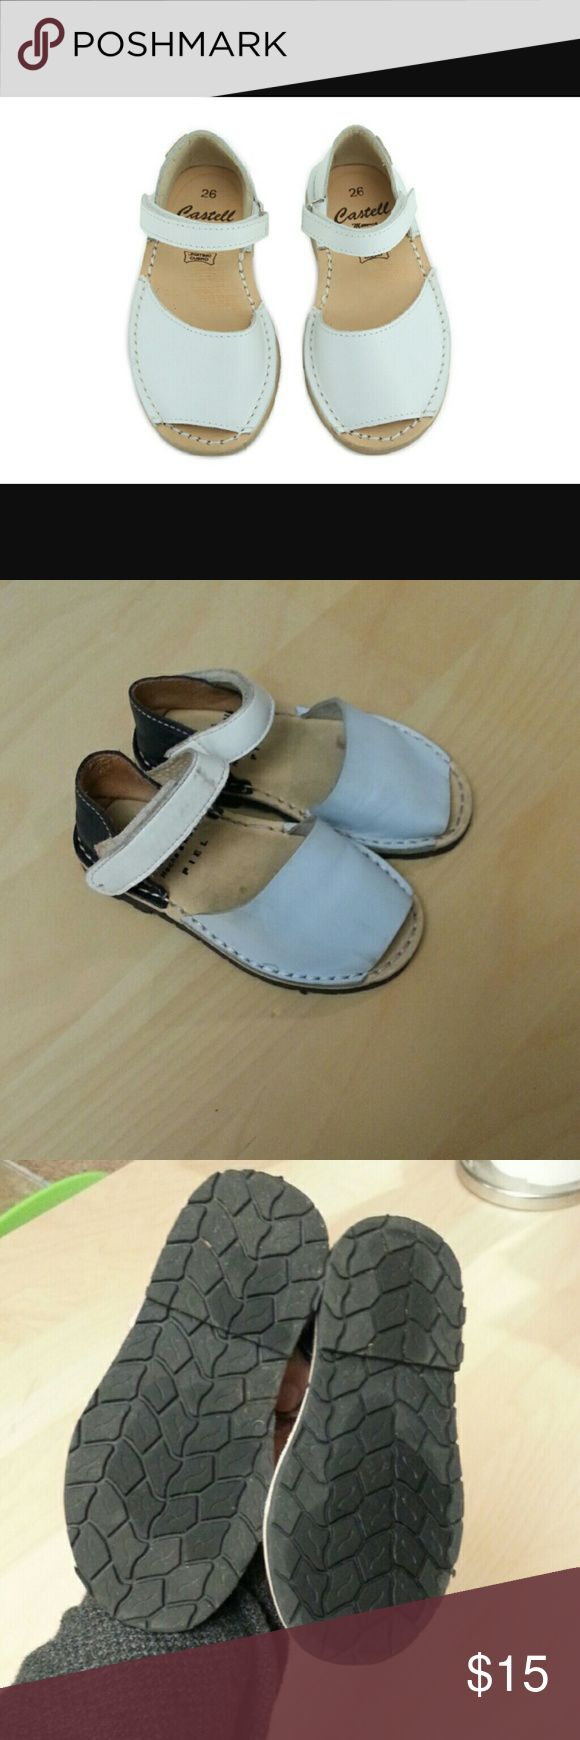 Avarca Menorquina Toddler Sandals Gently used condition. Size 6. Avarca Menorquina  Shoes Sandals & Flip Flops